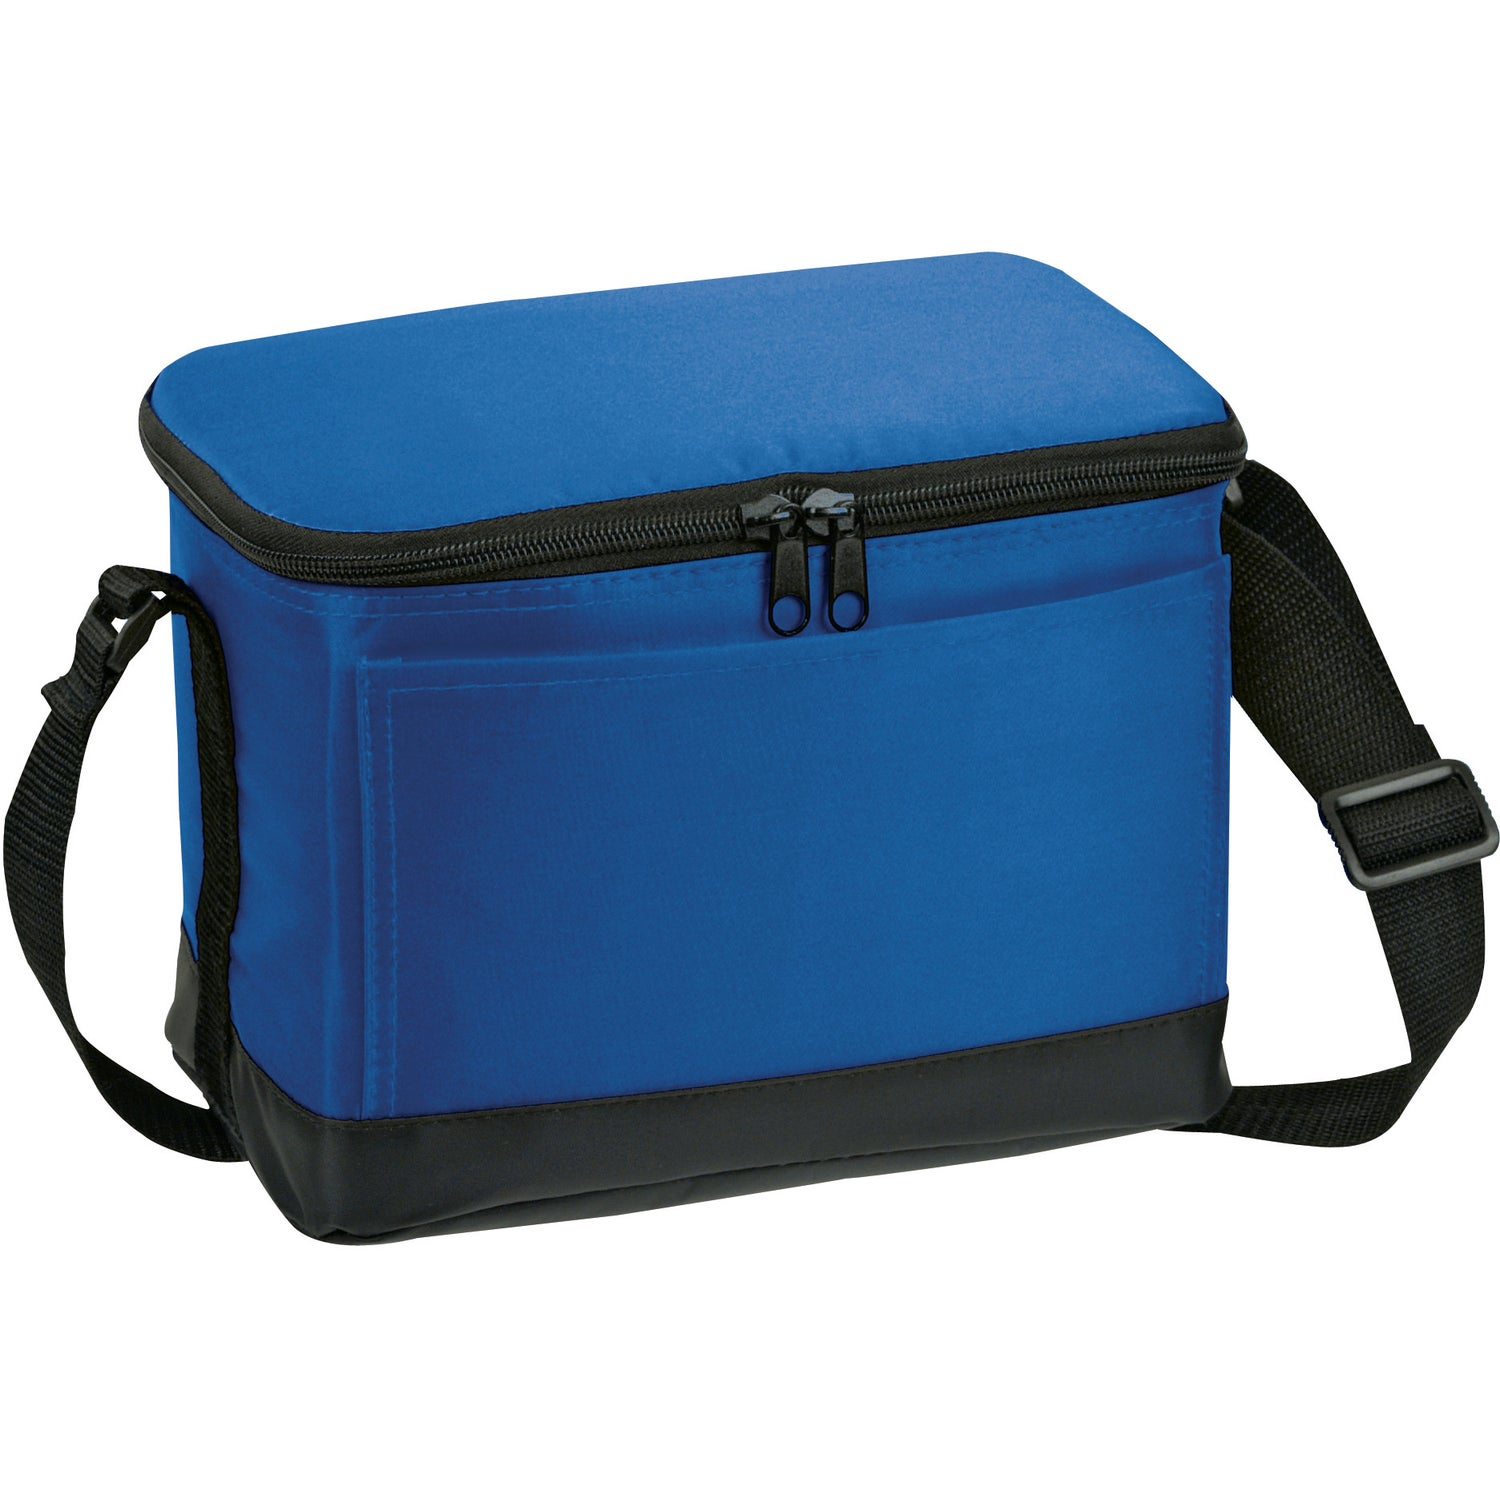 6 Pack Cooler ~ Pack insulated bag promotional coolers ea